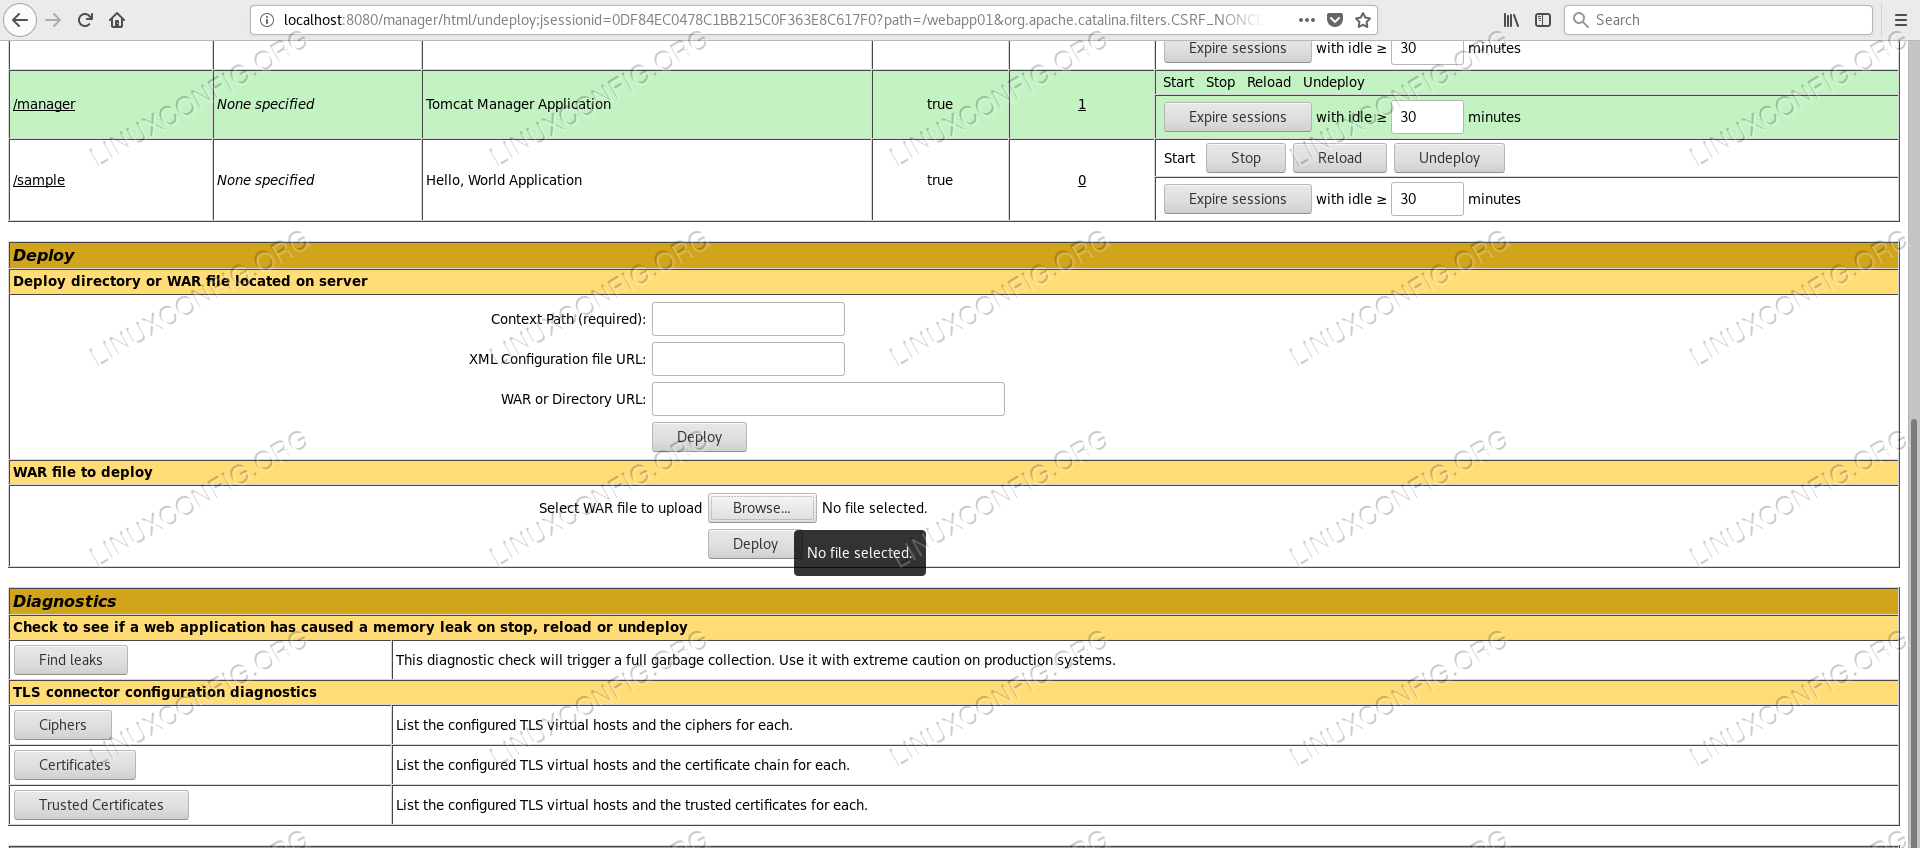 Upload form of Manager Application in Tomcat